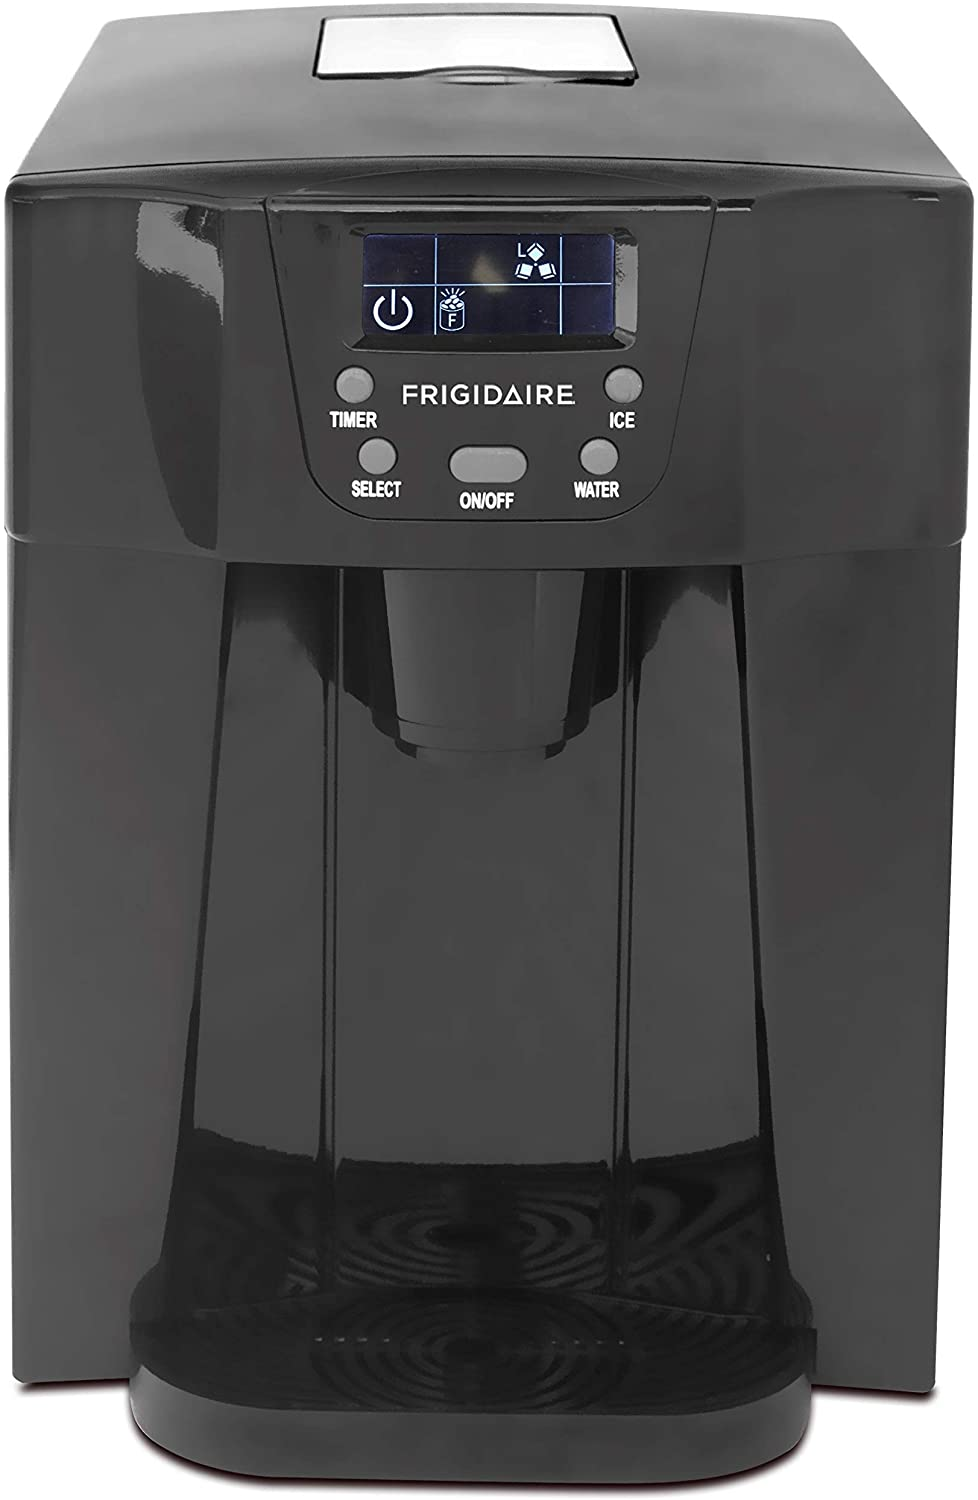 Frigidaire EFIC227-BLACK Countertop Compact Special Campaign Water Ice Outlet SALE and Maker